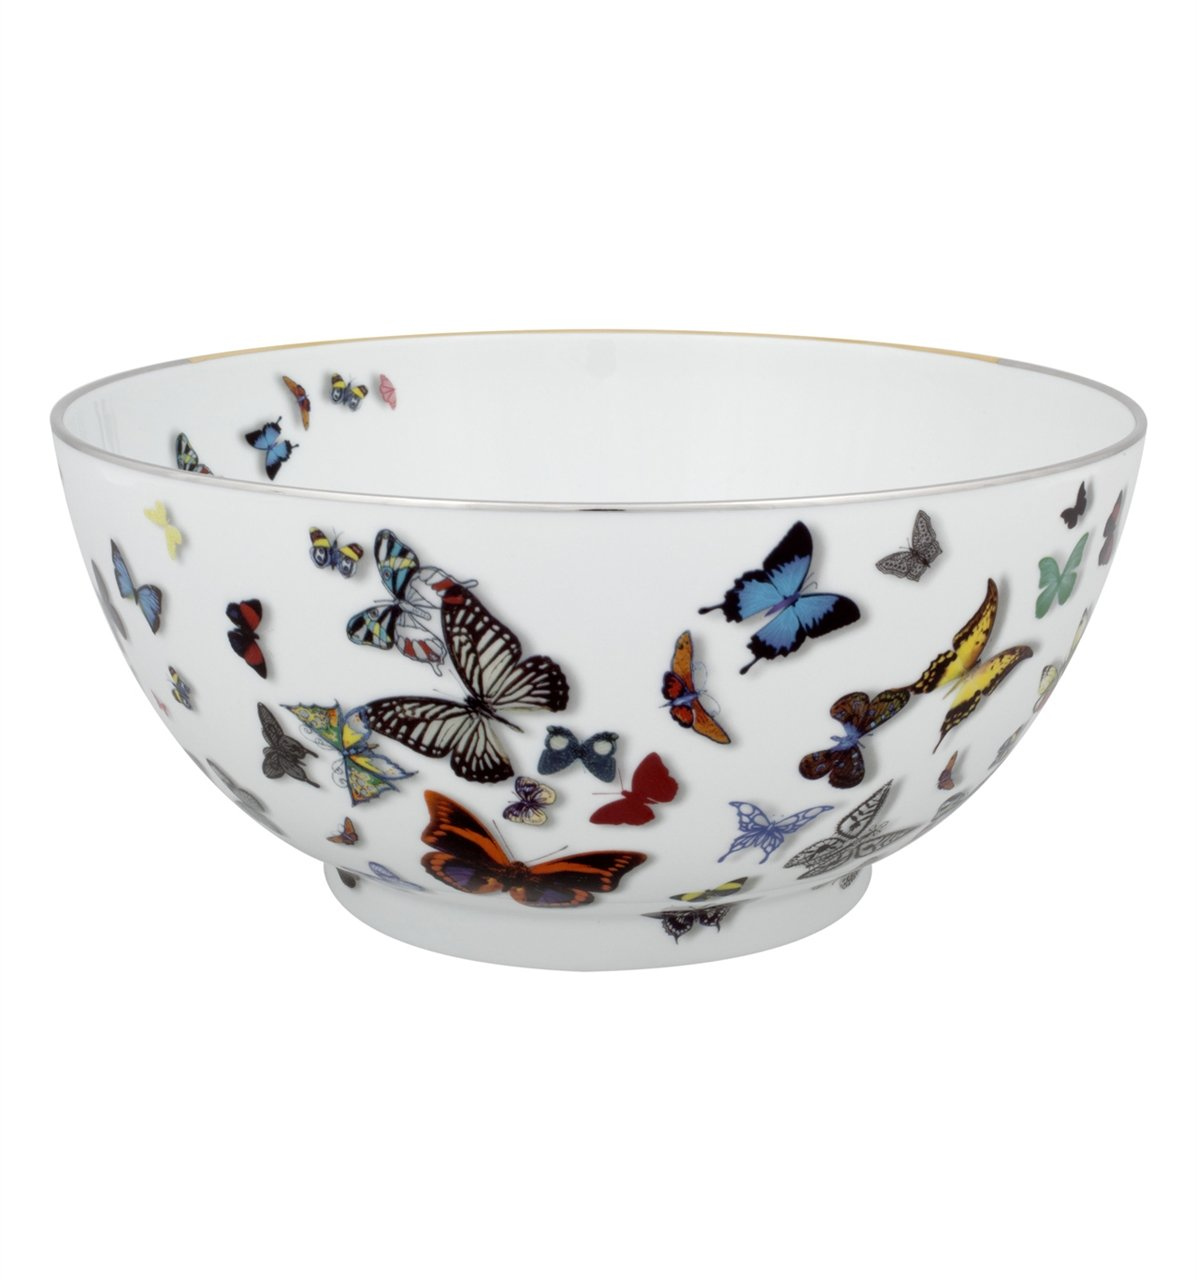 Vista Alegre Christian Lacroix Butterfly Parade Salad Bowl by Vista Alegre